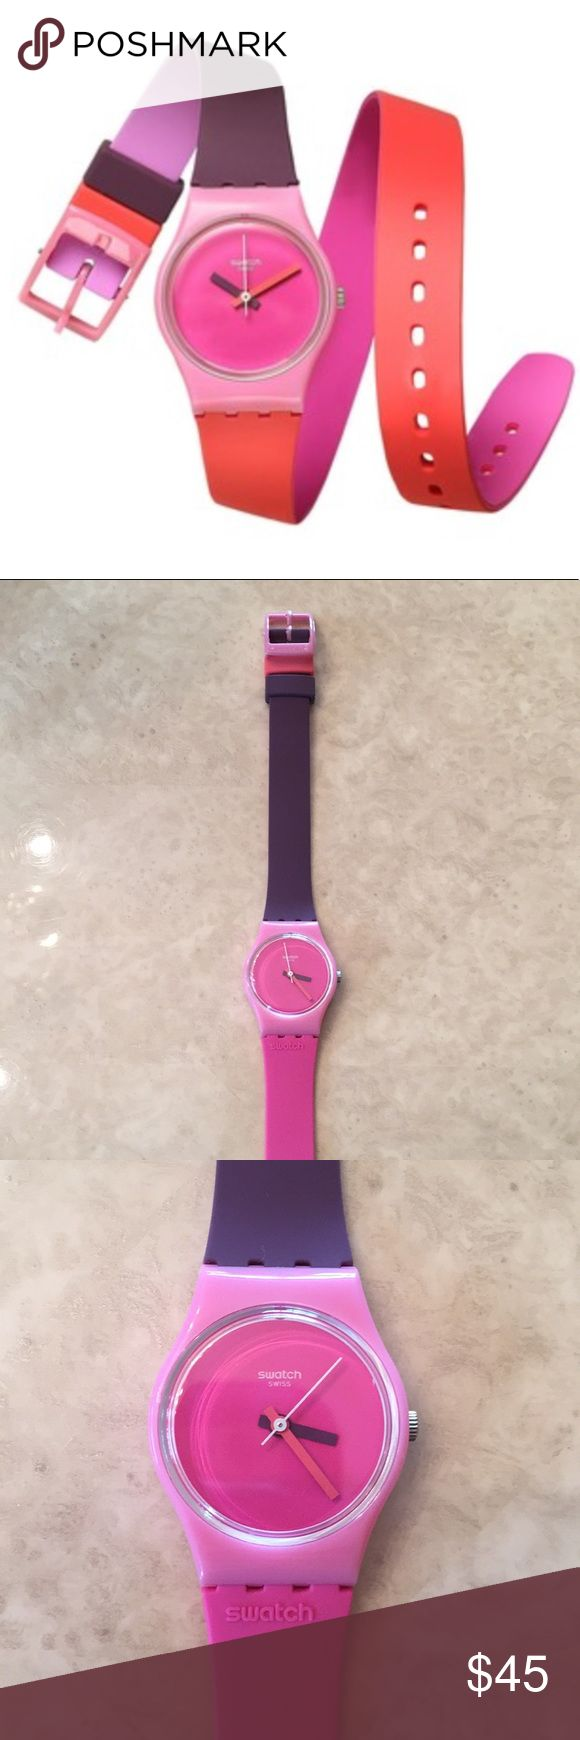 SWATCH WATCH Swatch watch..Fun In Pink..worn only once..in excellent condition..just got new battery from Swatch store..wraparound watch..pink face with pink and purple wristband..comes with box..refer to pics.. Swatch Accessories Watches